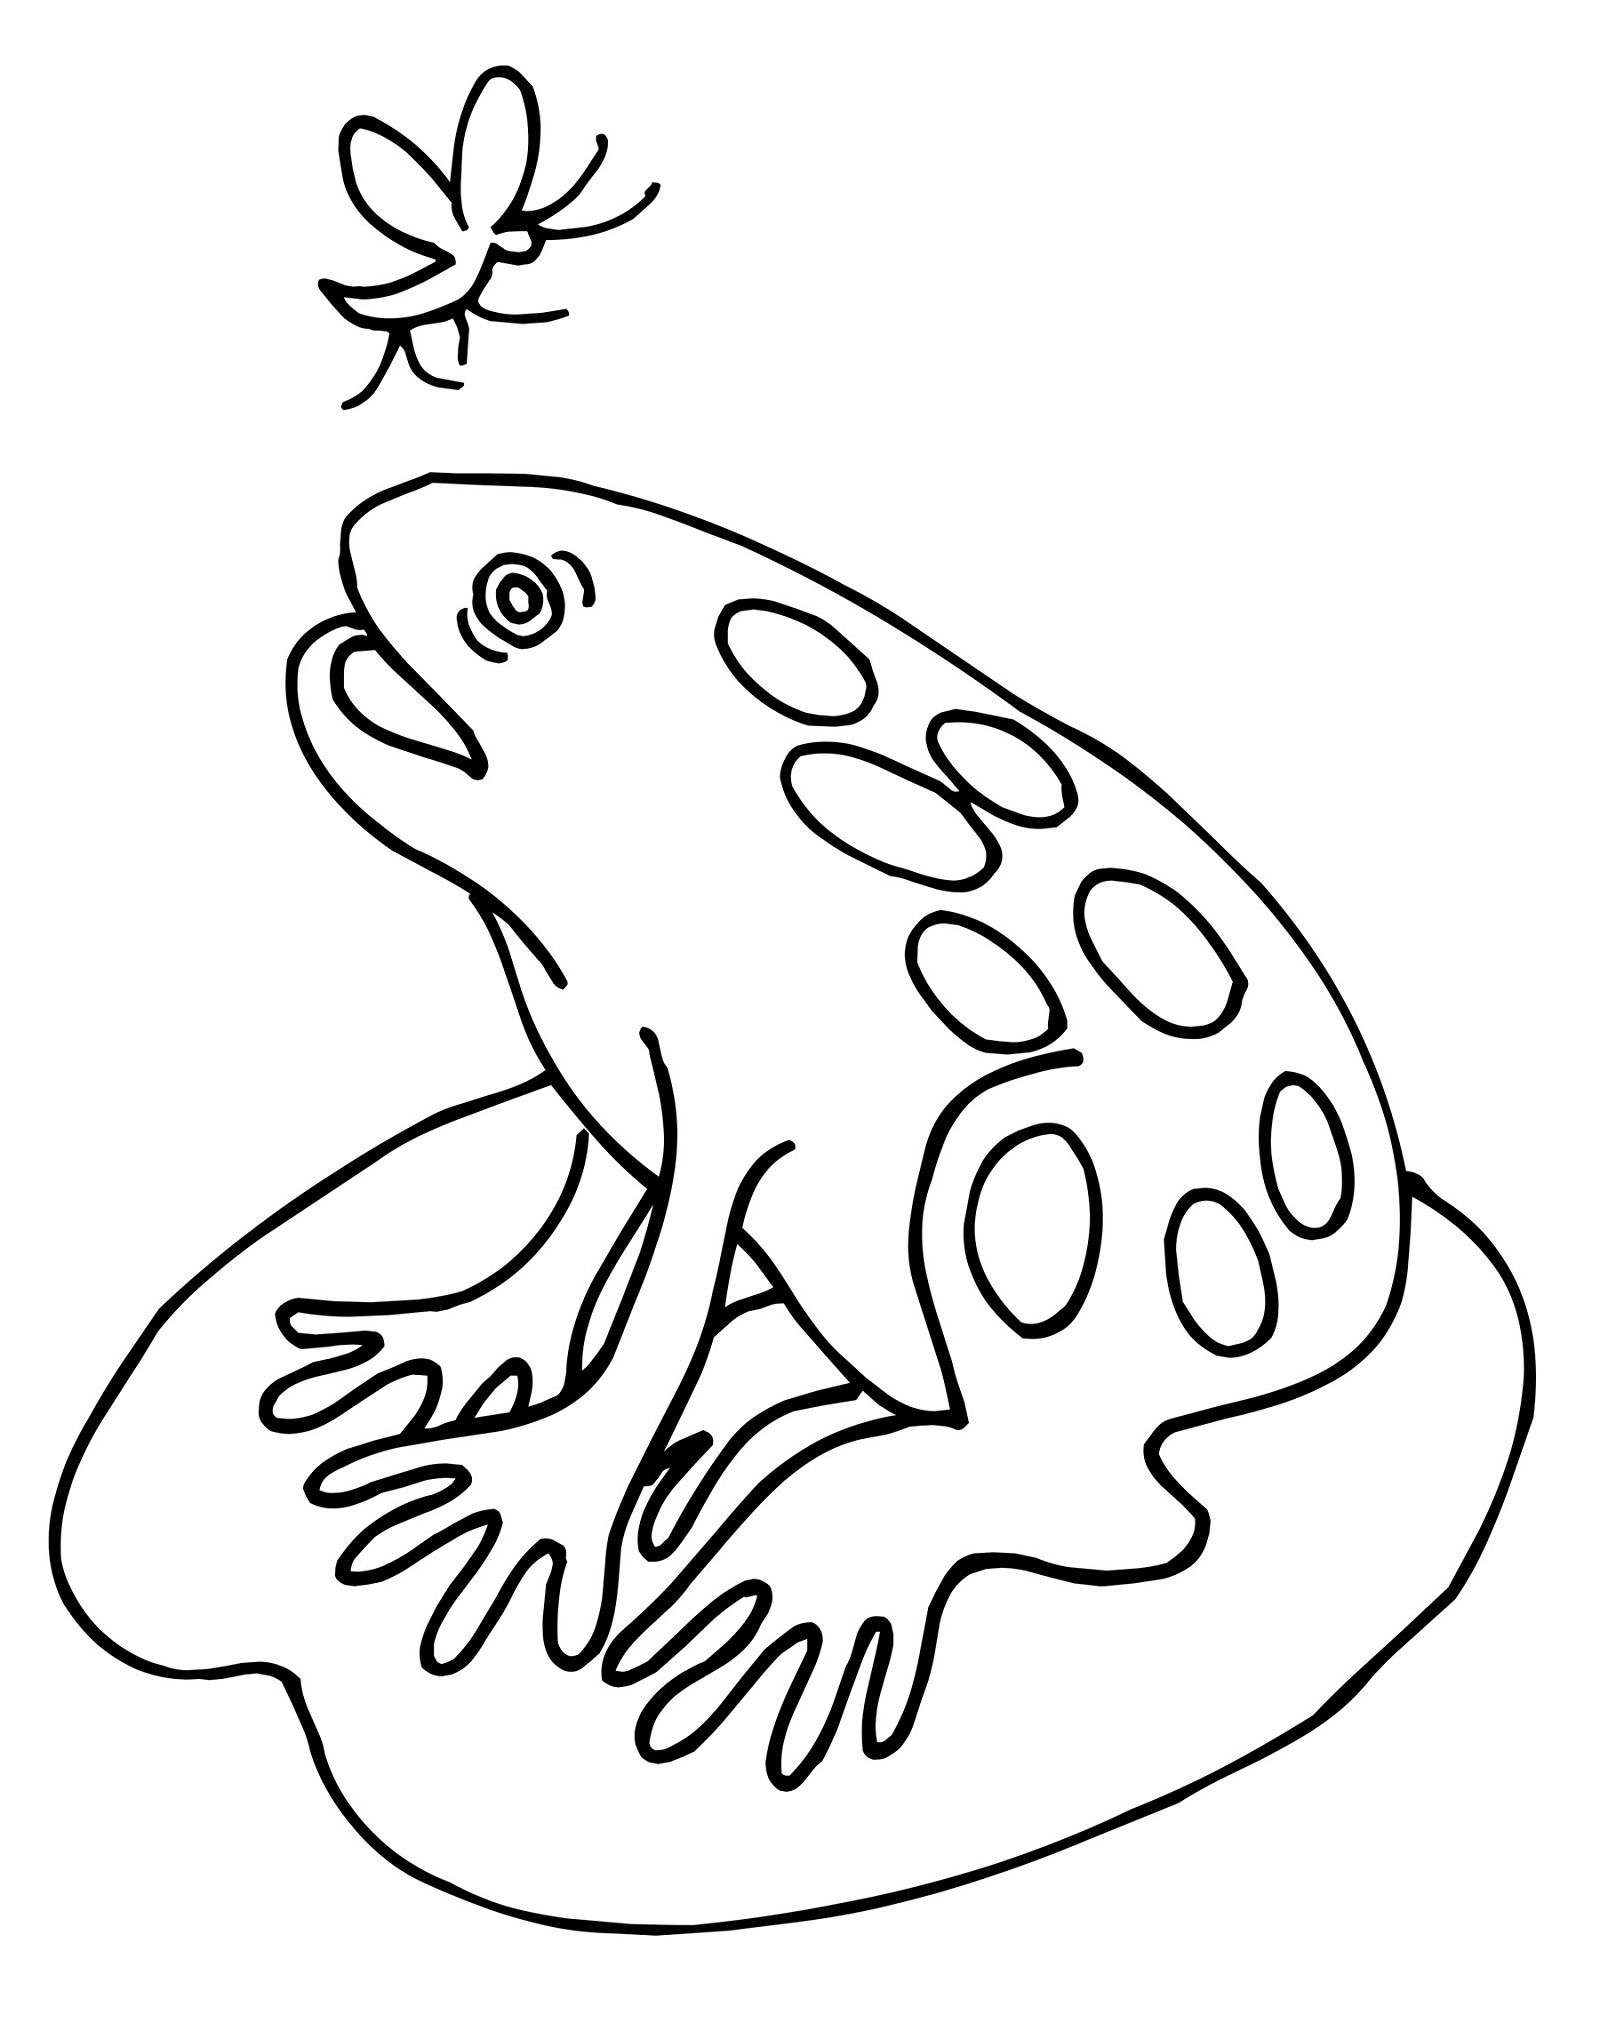 Frog Color Sheet For Kids Kiddo Shelter Lily Pads Coloring Pages Coloring Sheets